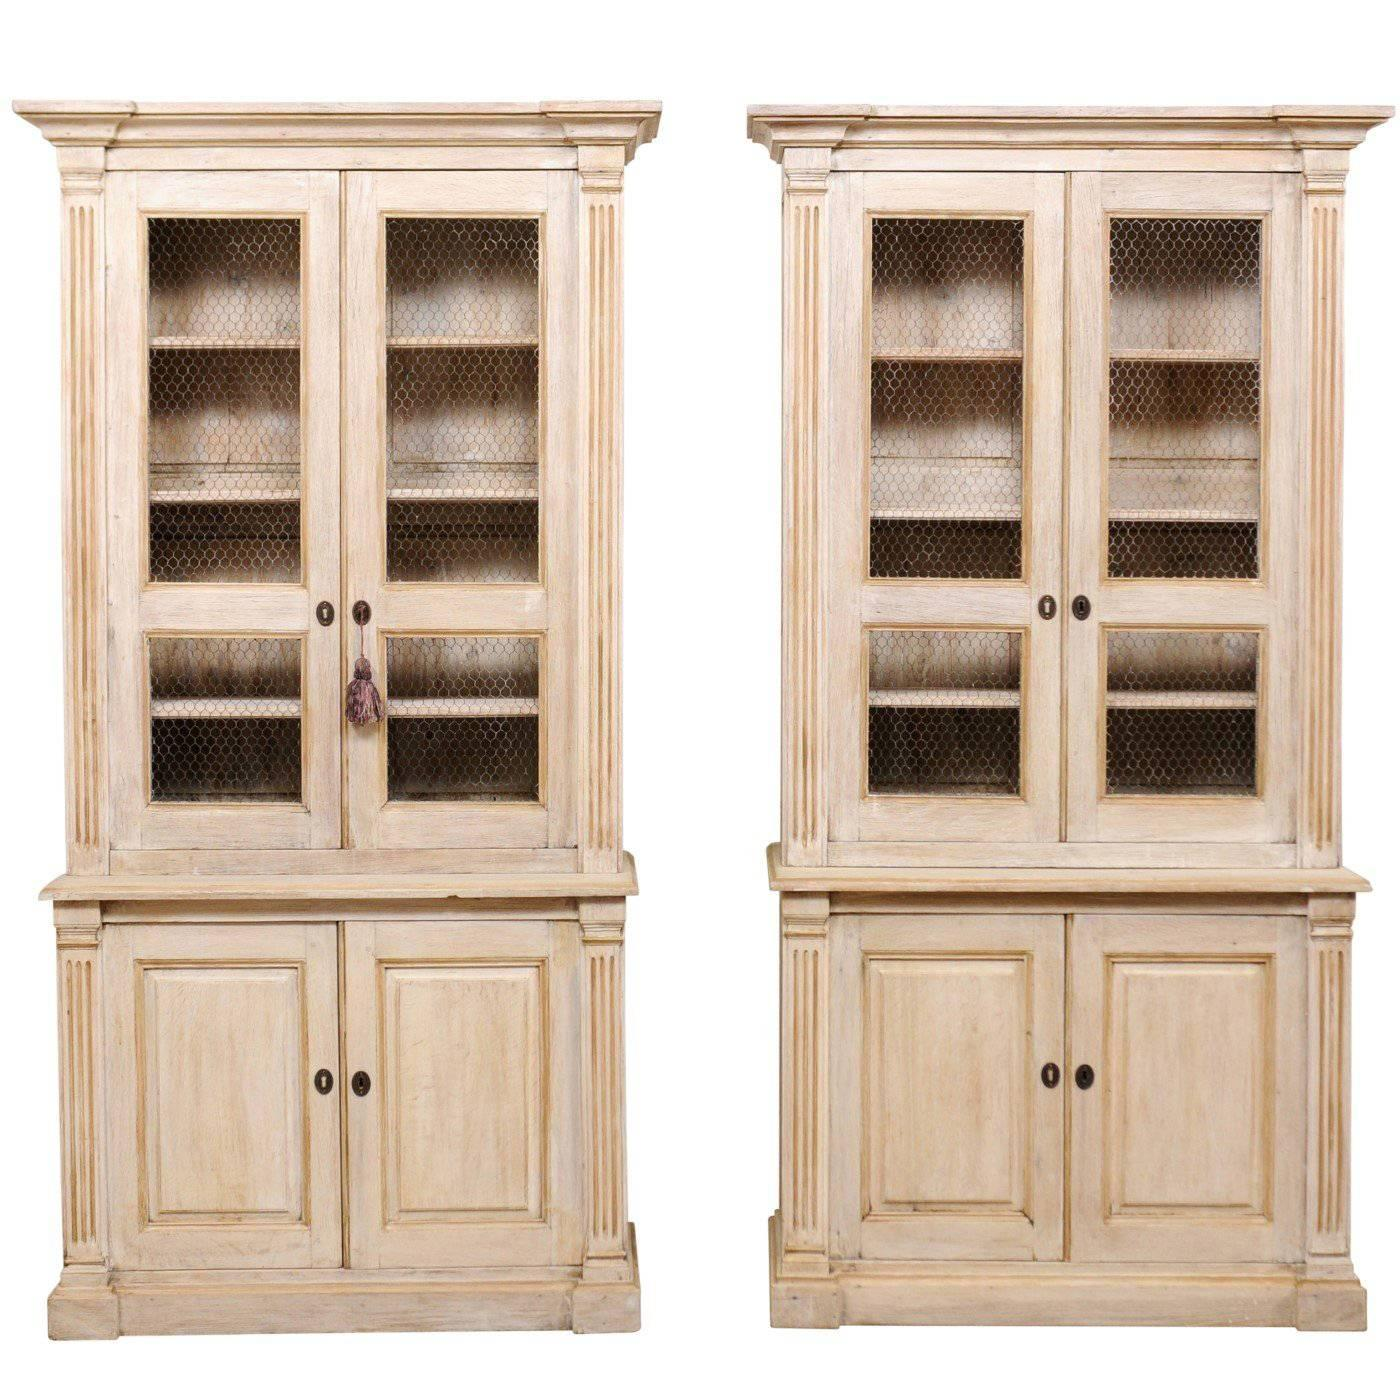 Pair Of 19th Century Tall Painted Wood Cabinets With Wire On The Cabinet  Doors